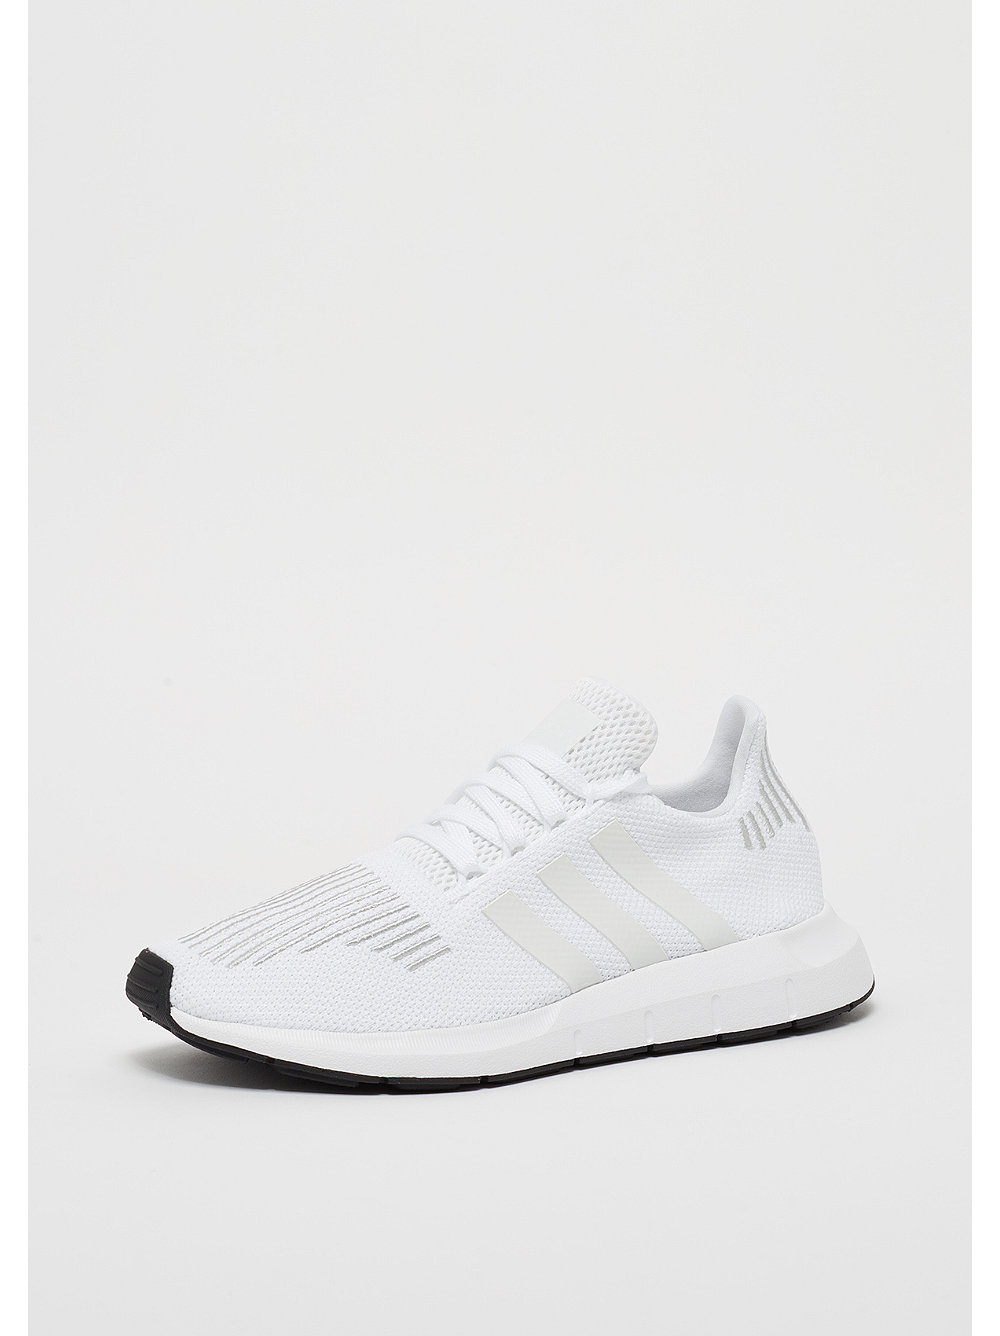 pretty nice 0ec28 6da07 Swift Run white Sneaker von adidas bei SNIPES kaufen!